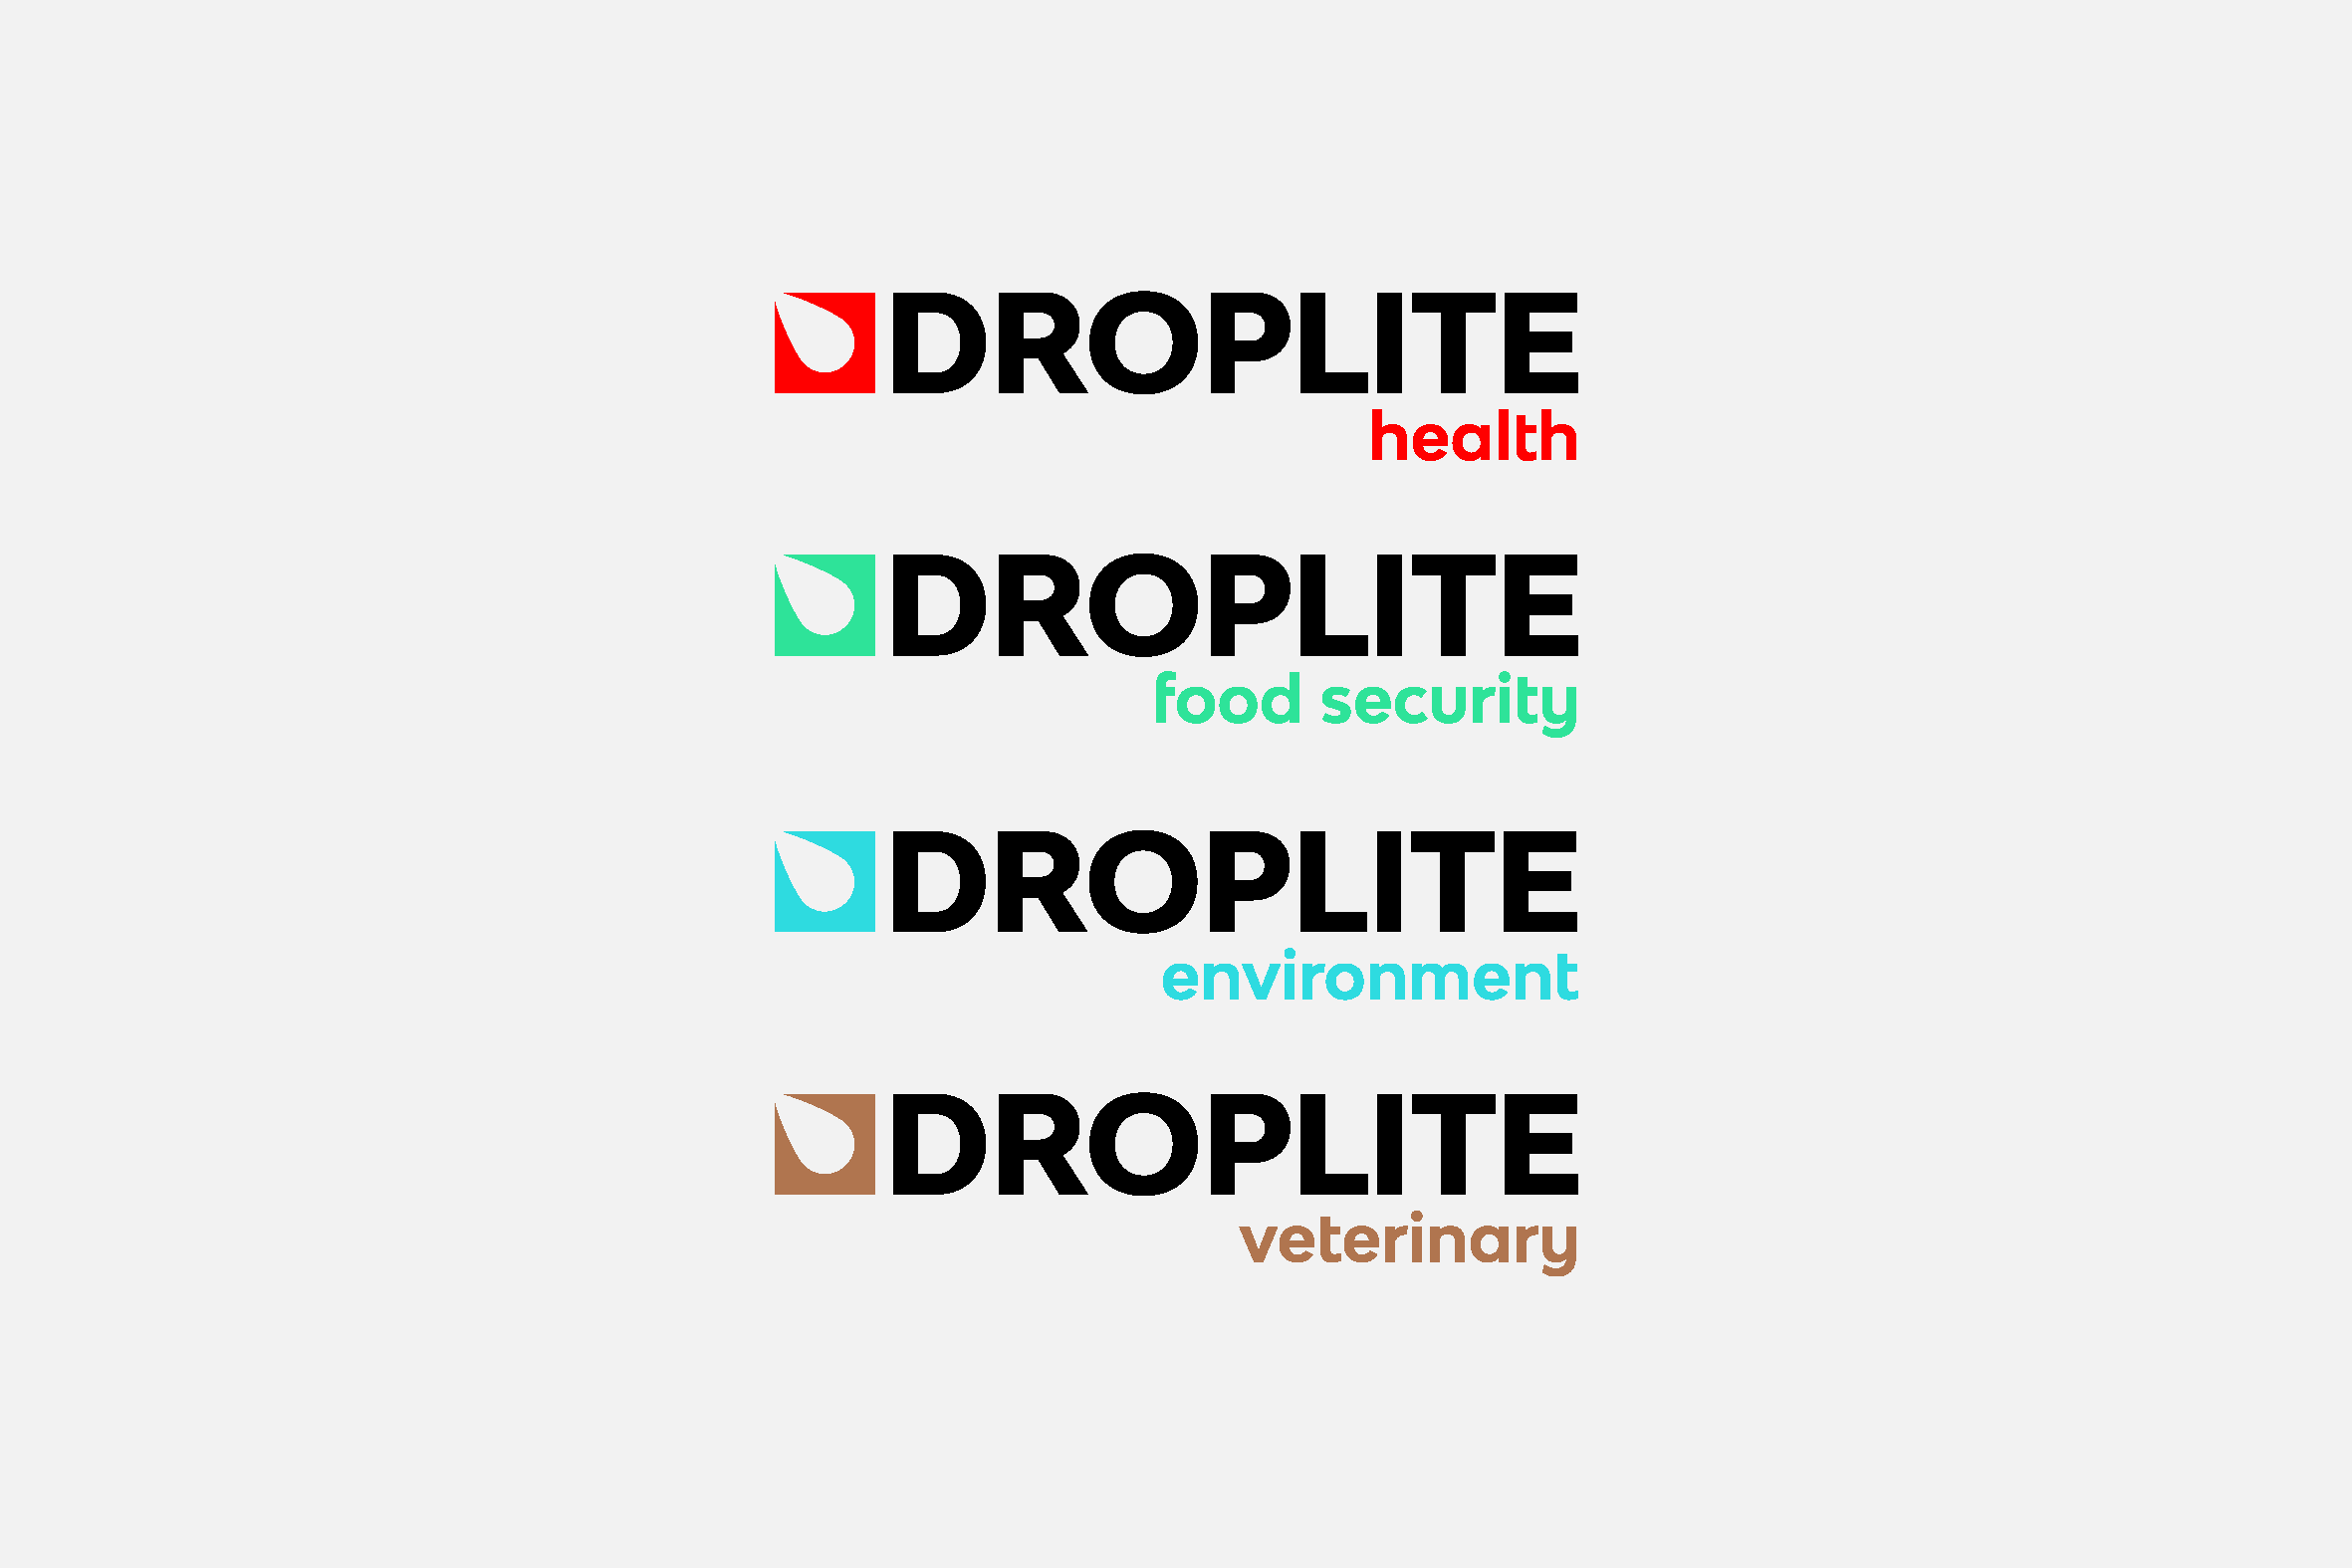 Droplite-logo-collection-Daniel-Cavalcanti